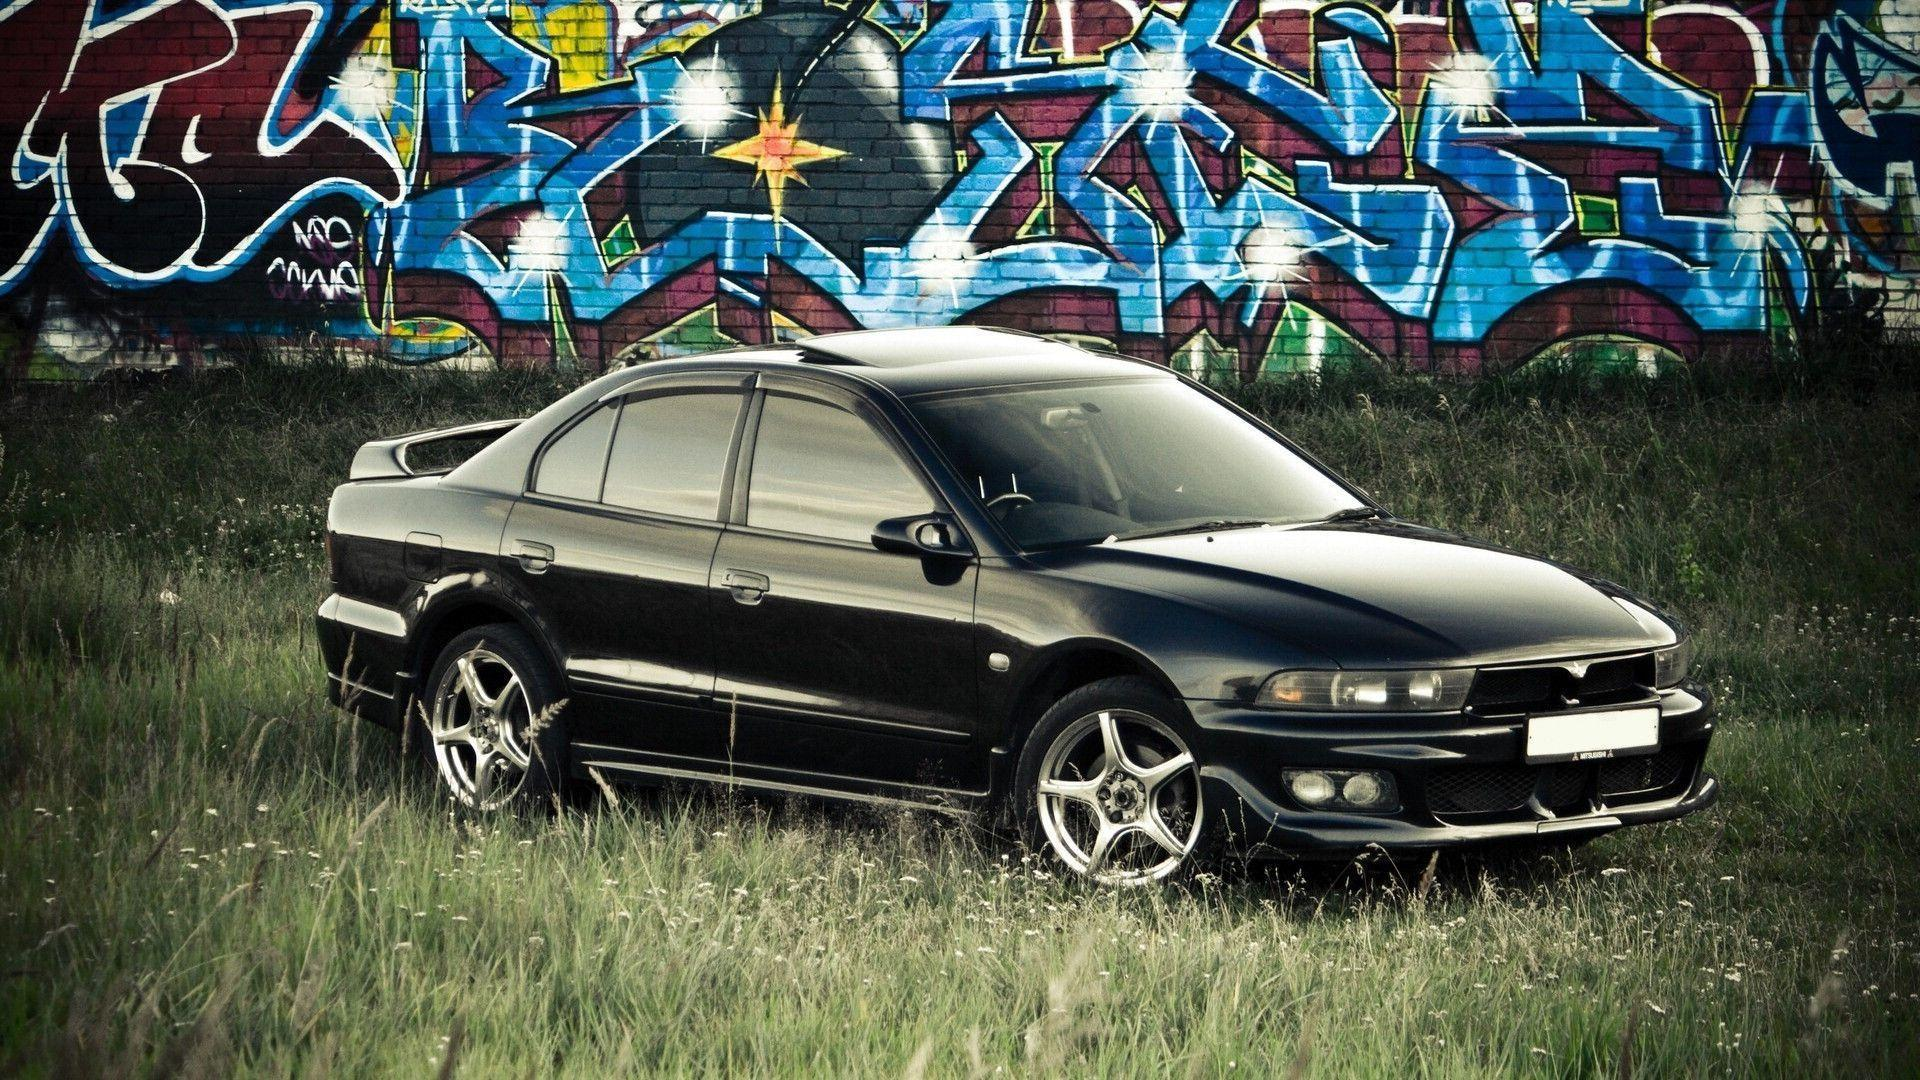 Mitsubishi Galant Wallpapers Wallpaper Cave